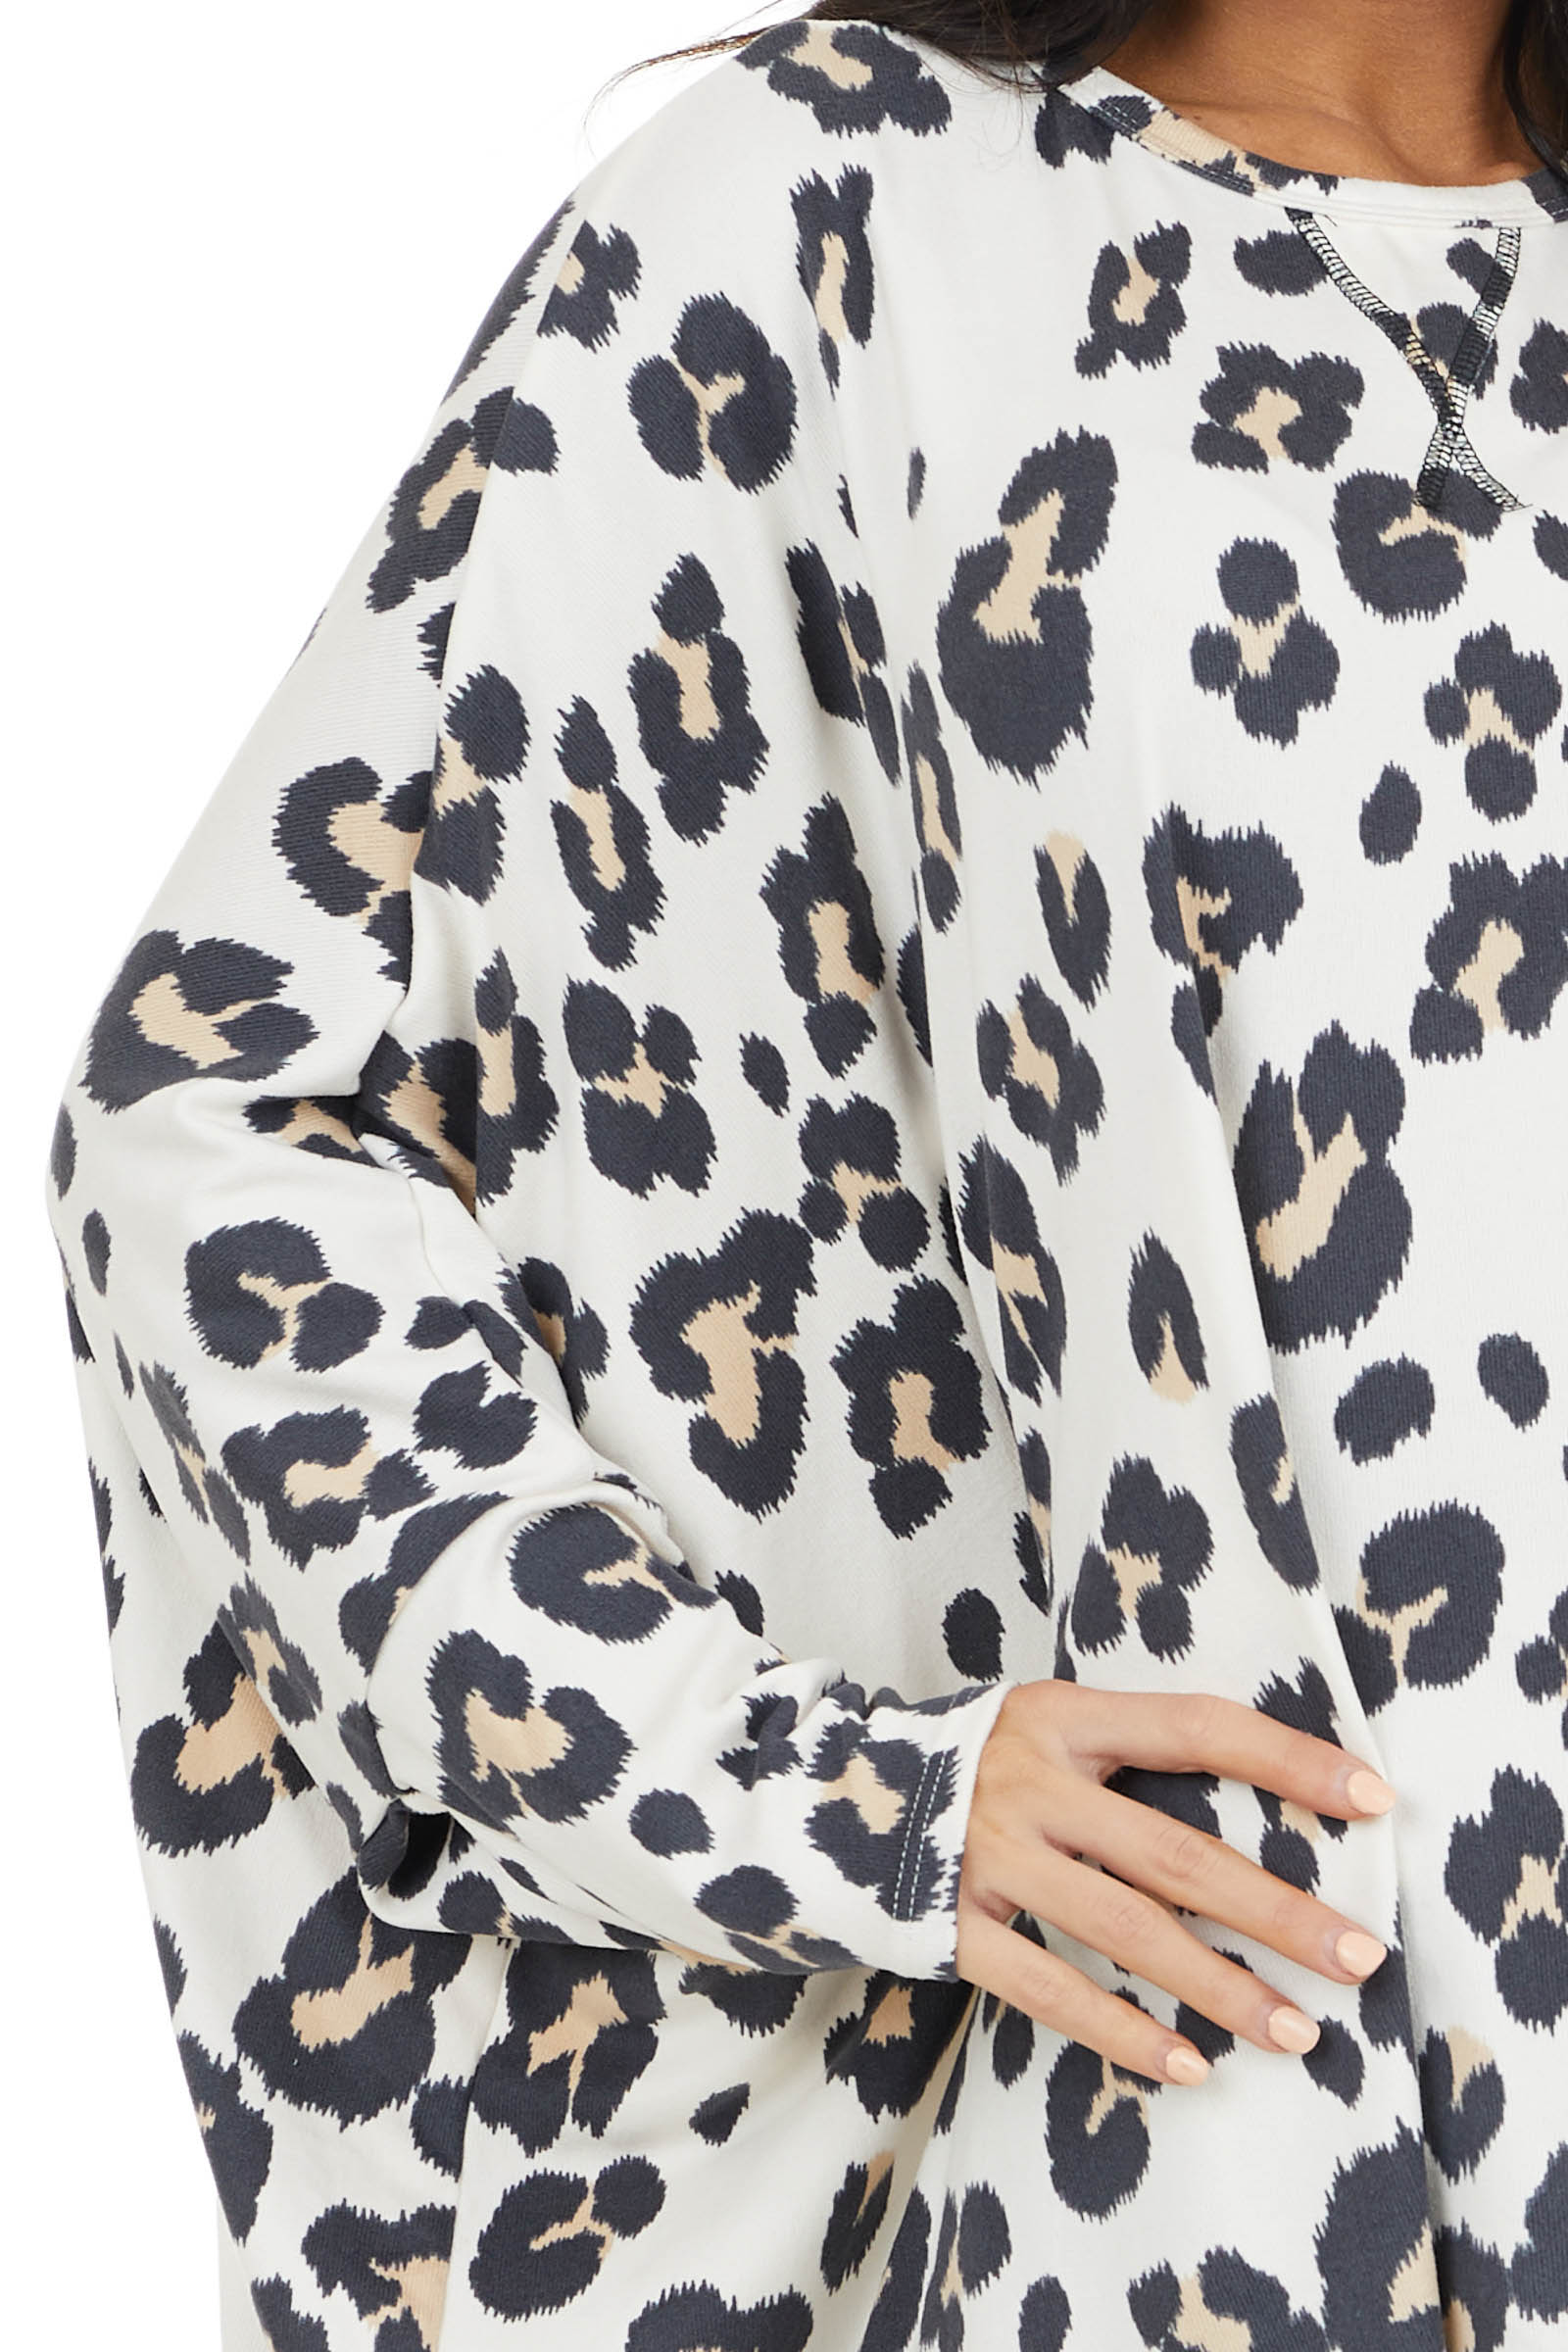 Off White Leopard Print Oversized Top with Dolman Sleeves